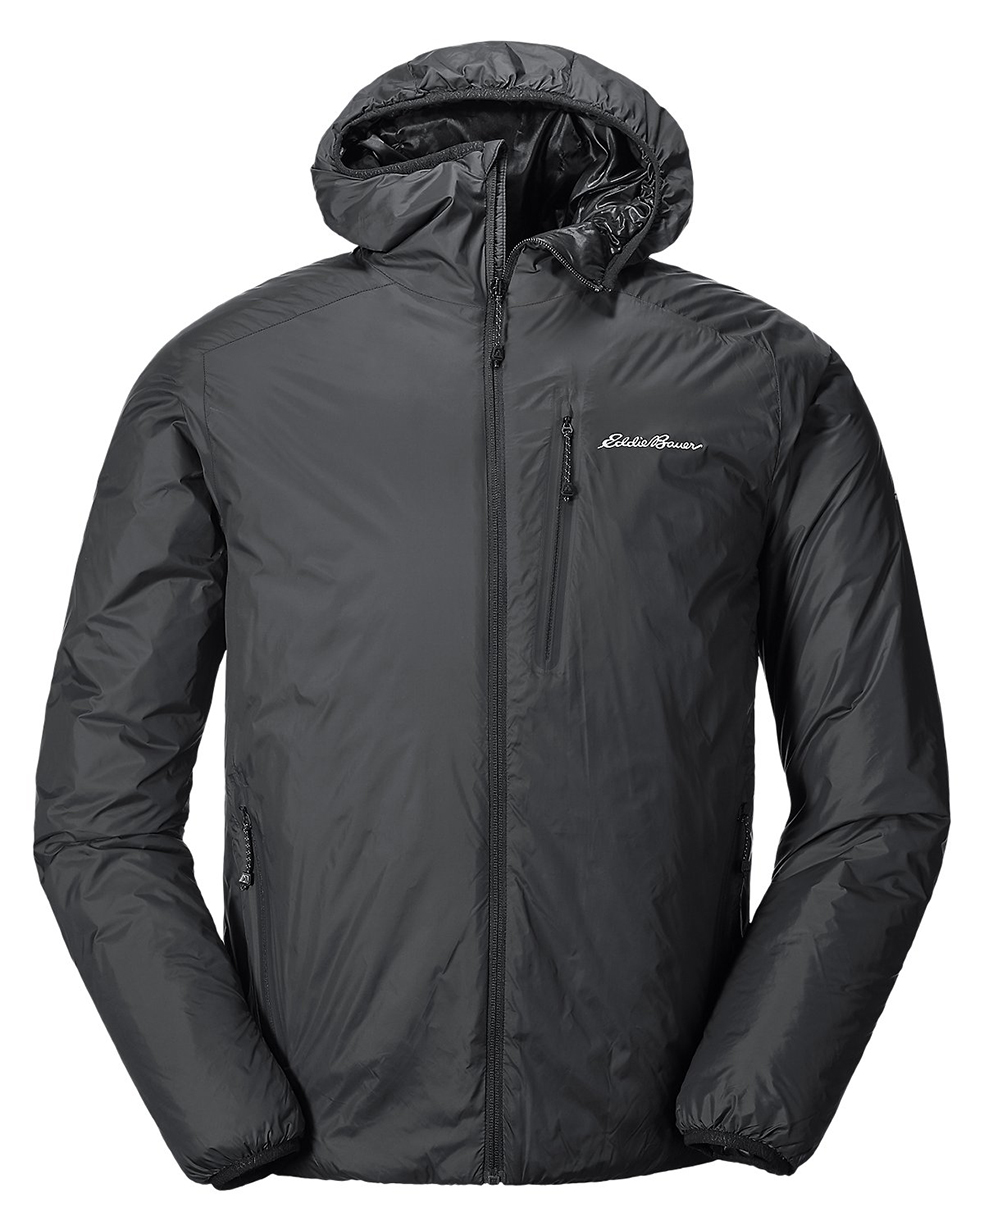 Sam Shaheen reviews the Eddie Bauer EverTherm Down Hooded Jacket for Blister